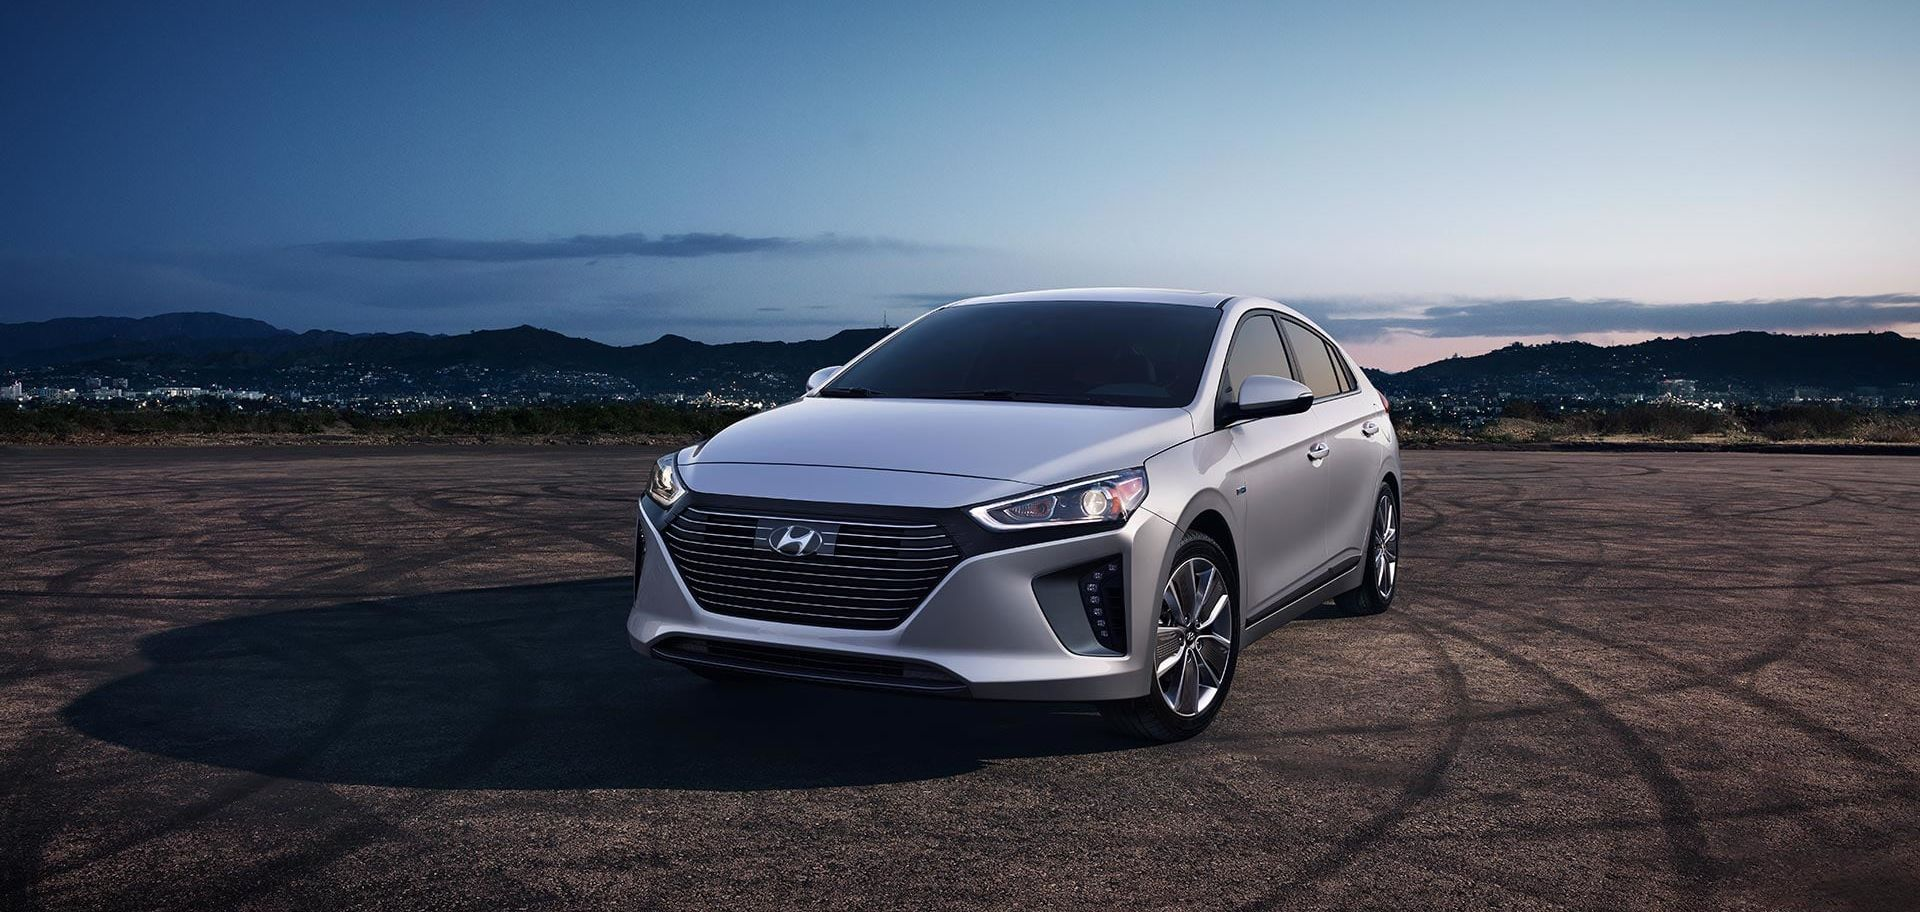 Take a Home a Hybrid like the 2019 Hyundai Ioniq!